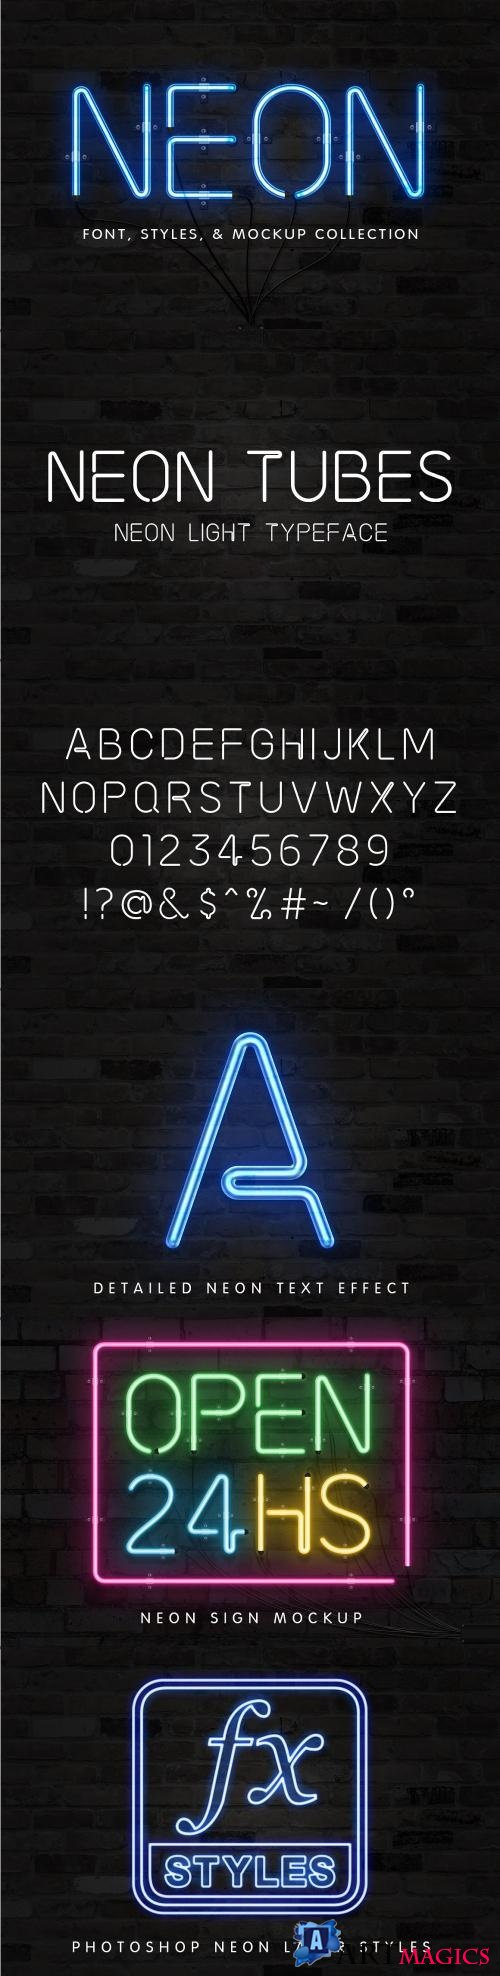 The Neon Font & Sign Collection - 1874128